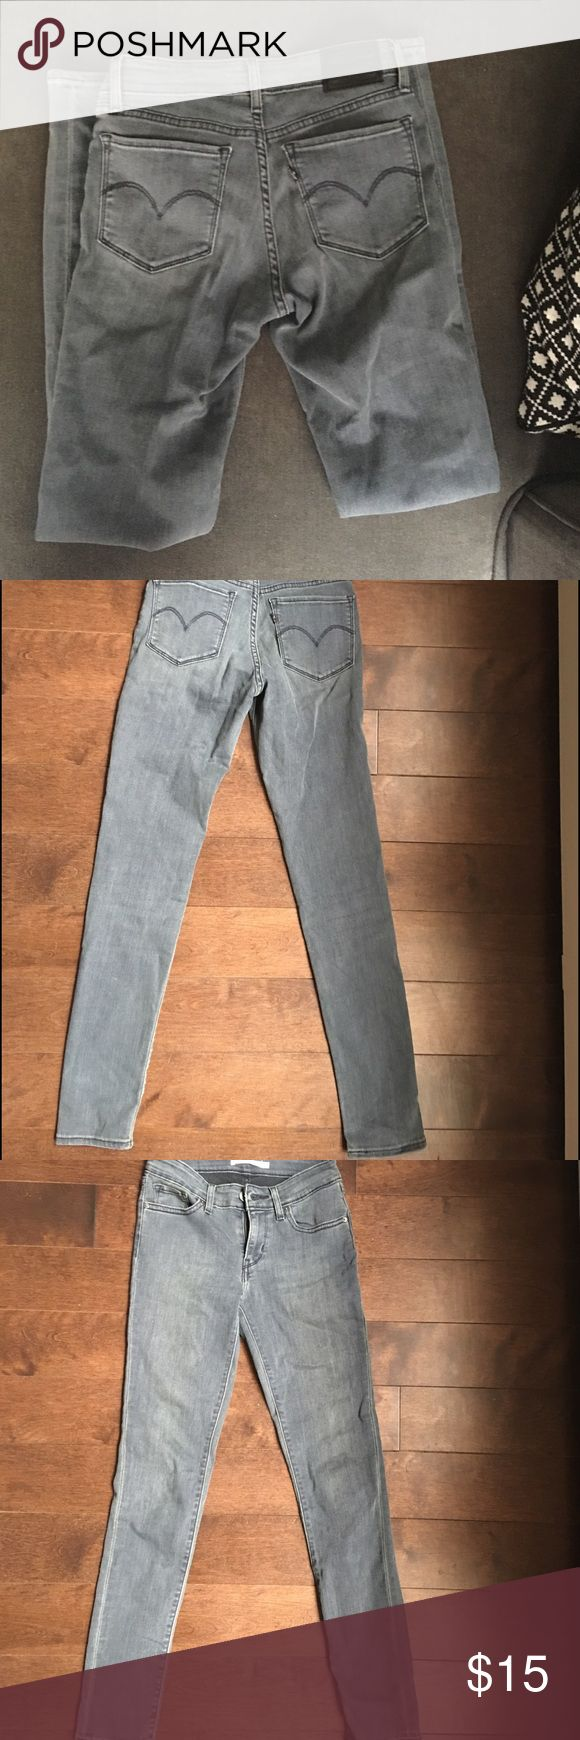 Levi Skinny Grey Jeans 711 Skinny Levi Jeans. Never worn. Length: approx 38 inches. hug your butt and legs in all the right places ✨ Levi's Pants Skinny